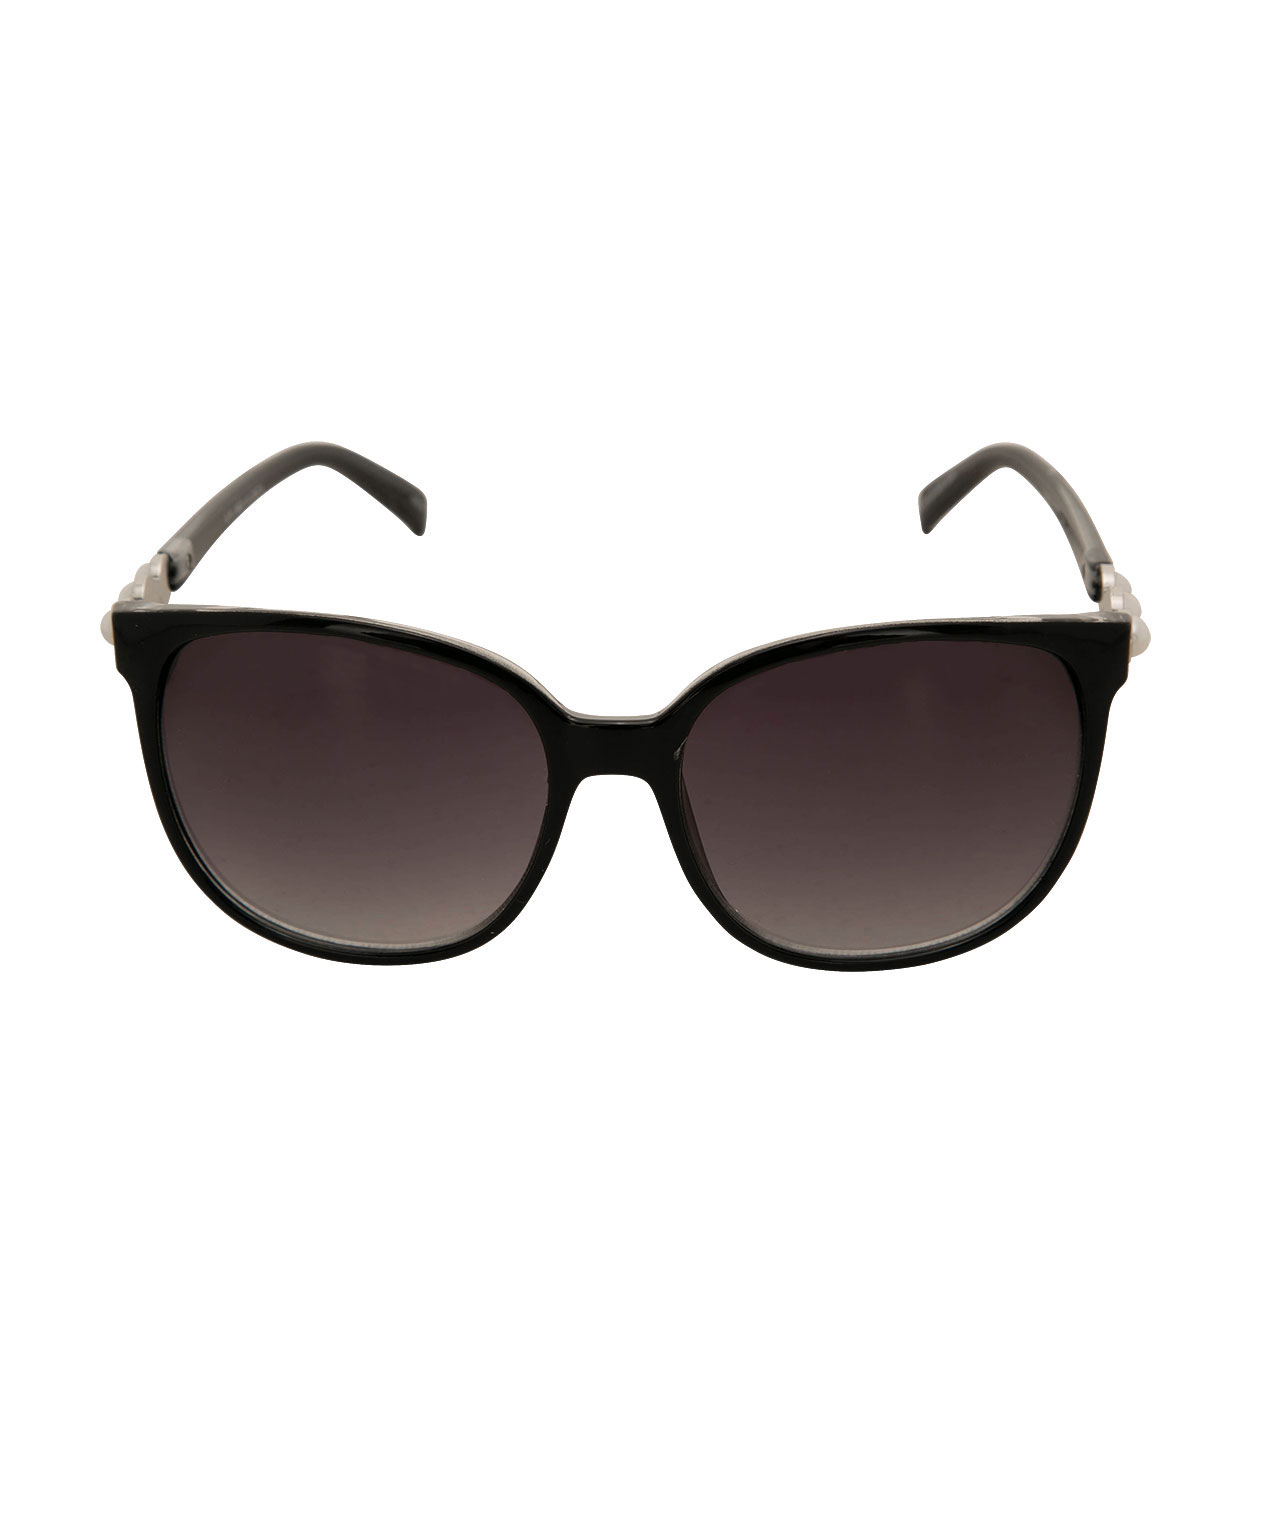 Pearl Embellished Round Sunglasses, Black/Ivory/Silver, hi-res